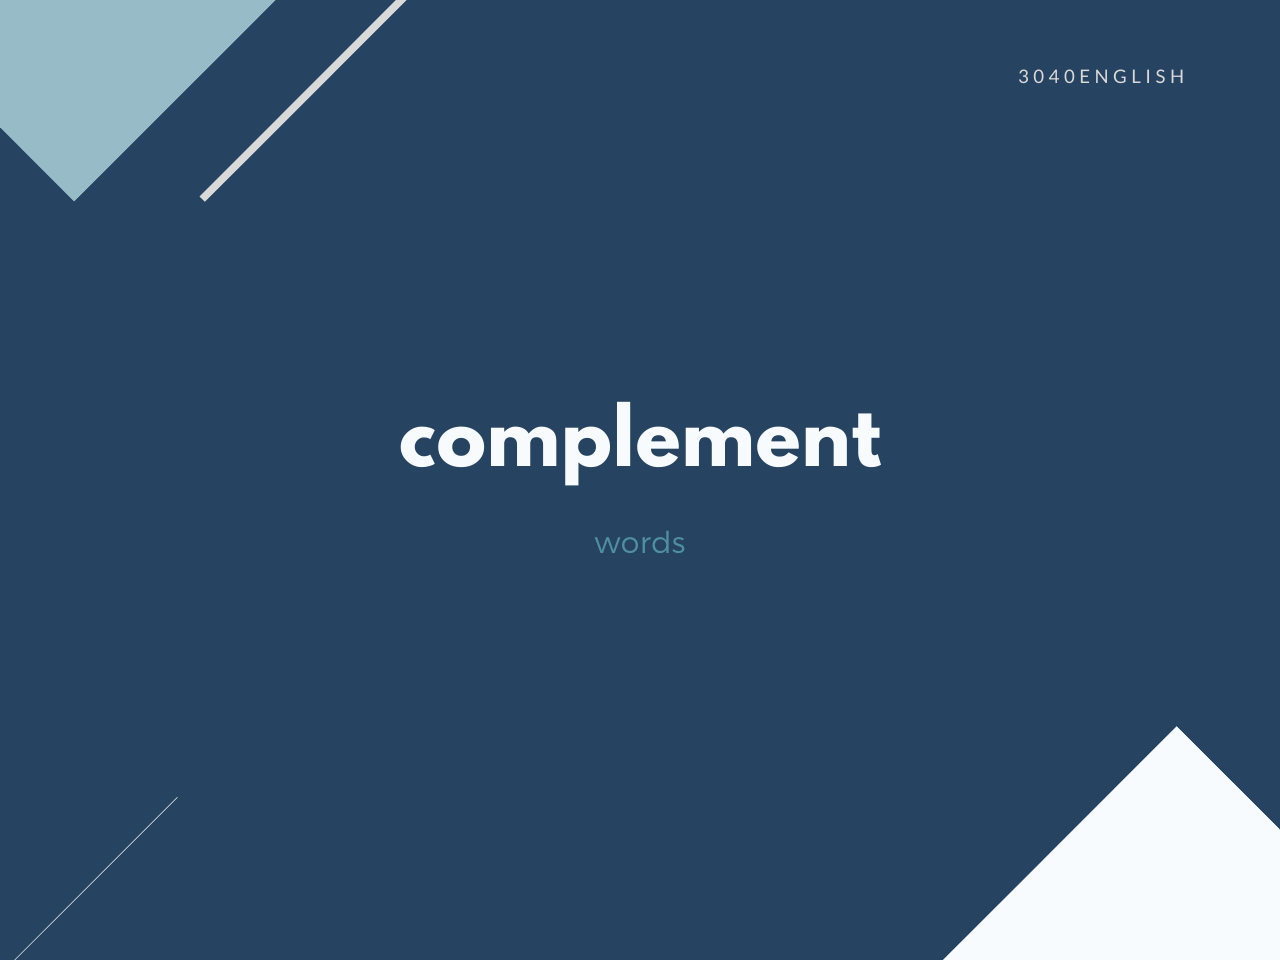 complement の意味と簡単な使い方【音読用例文あり】